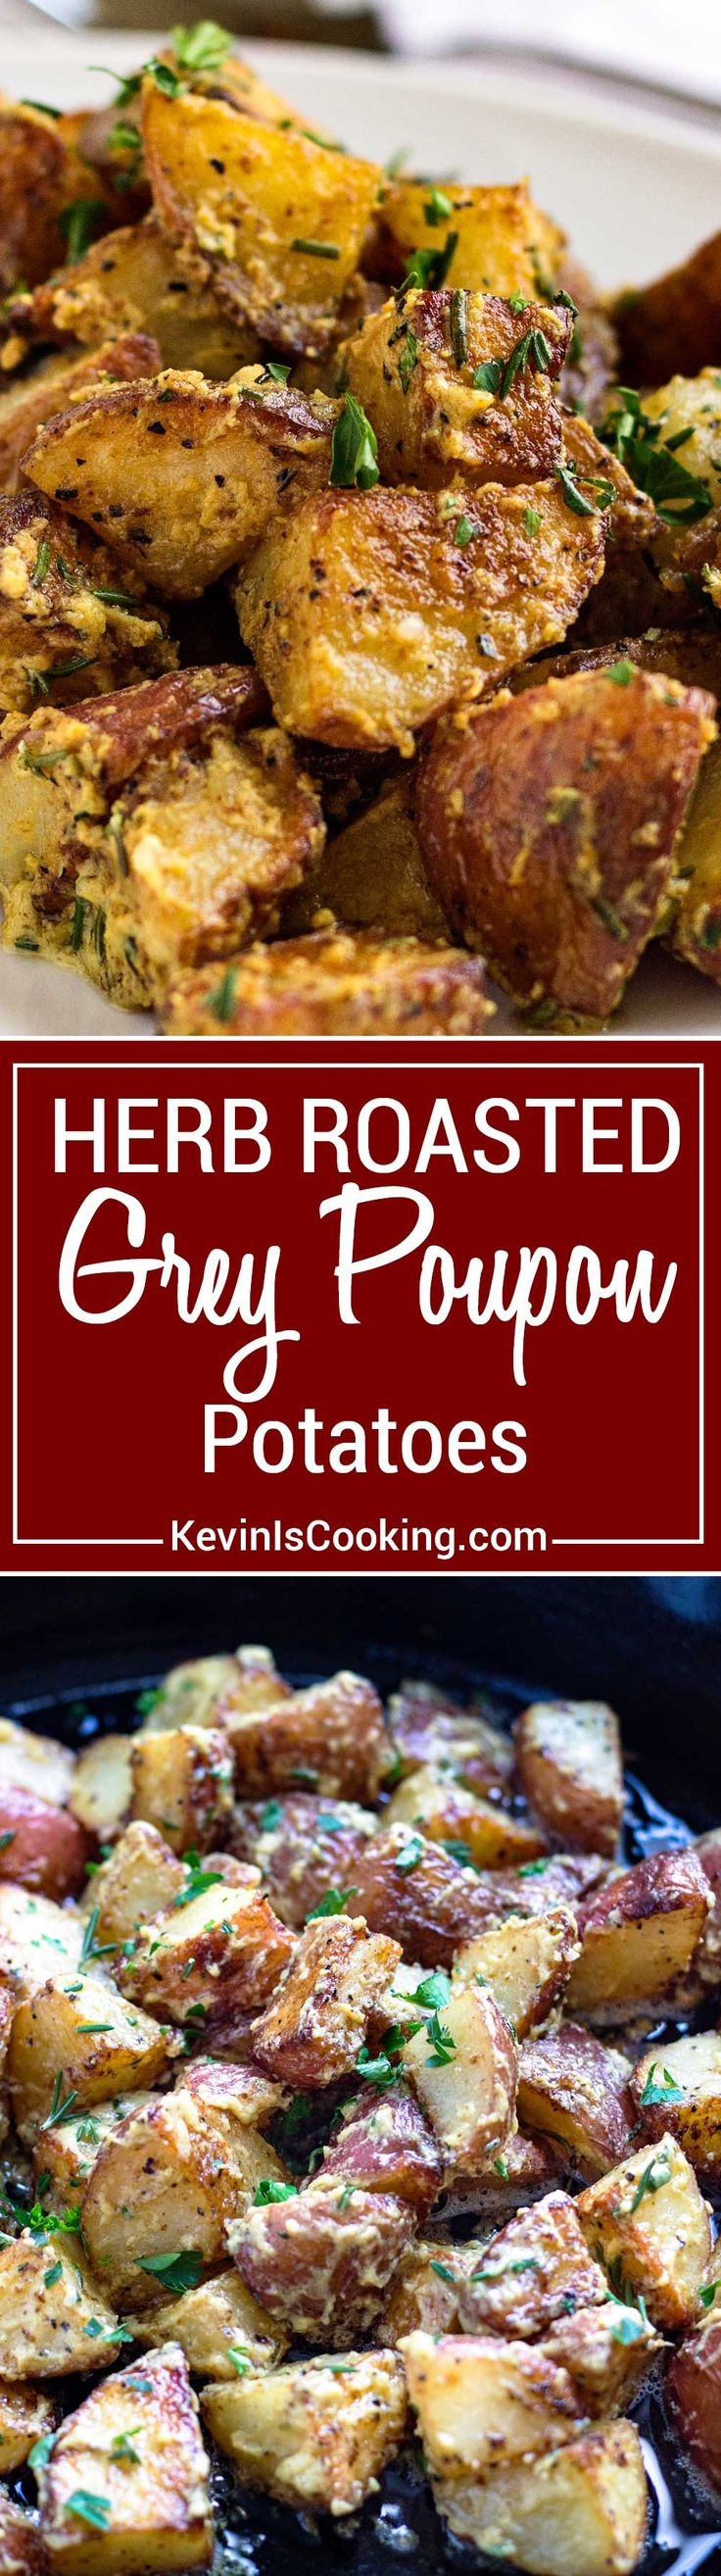 These Herb Roasted Poupon Potatoes couldn't be any easier. Caramelized red potatoes that are crispy on the outside all coated with a tangy sauce. Great family side dish that pleases!